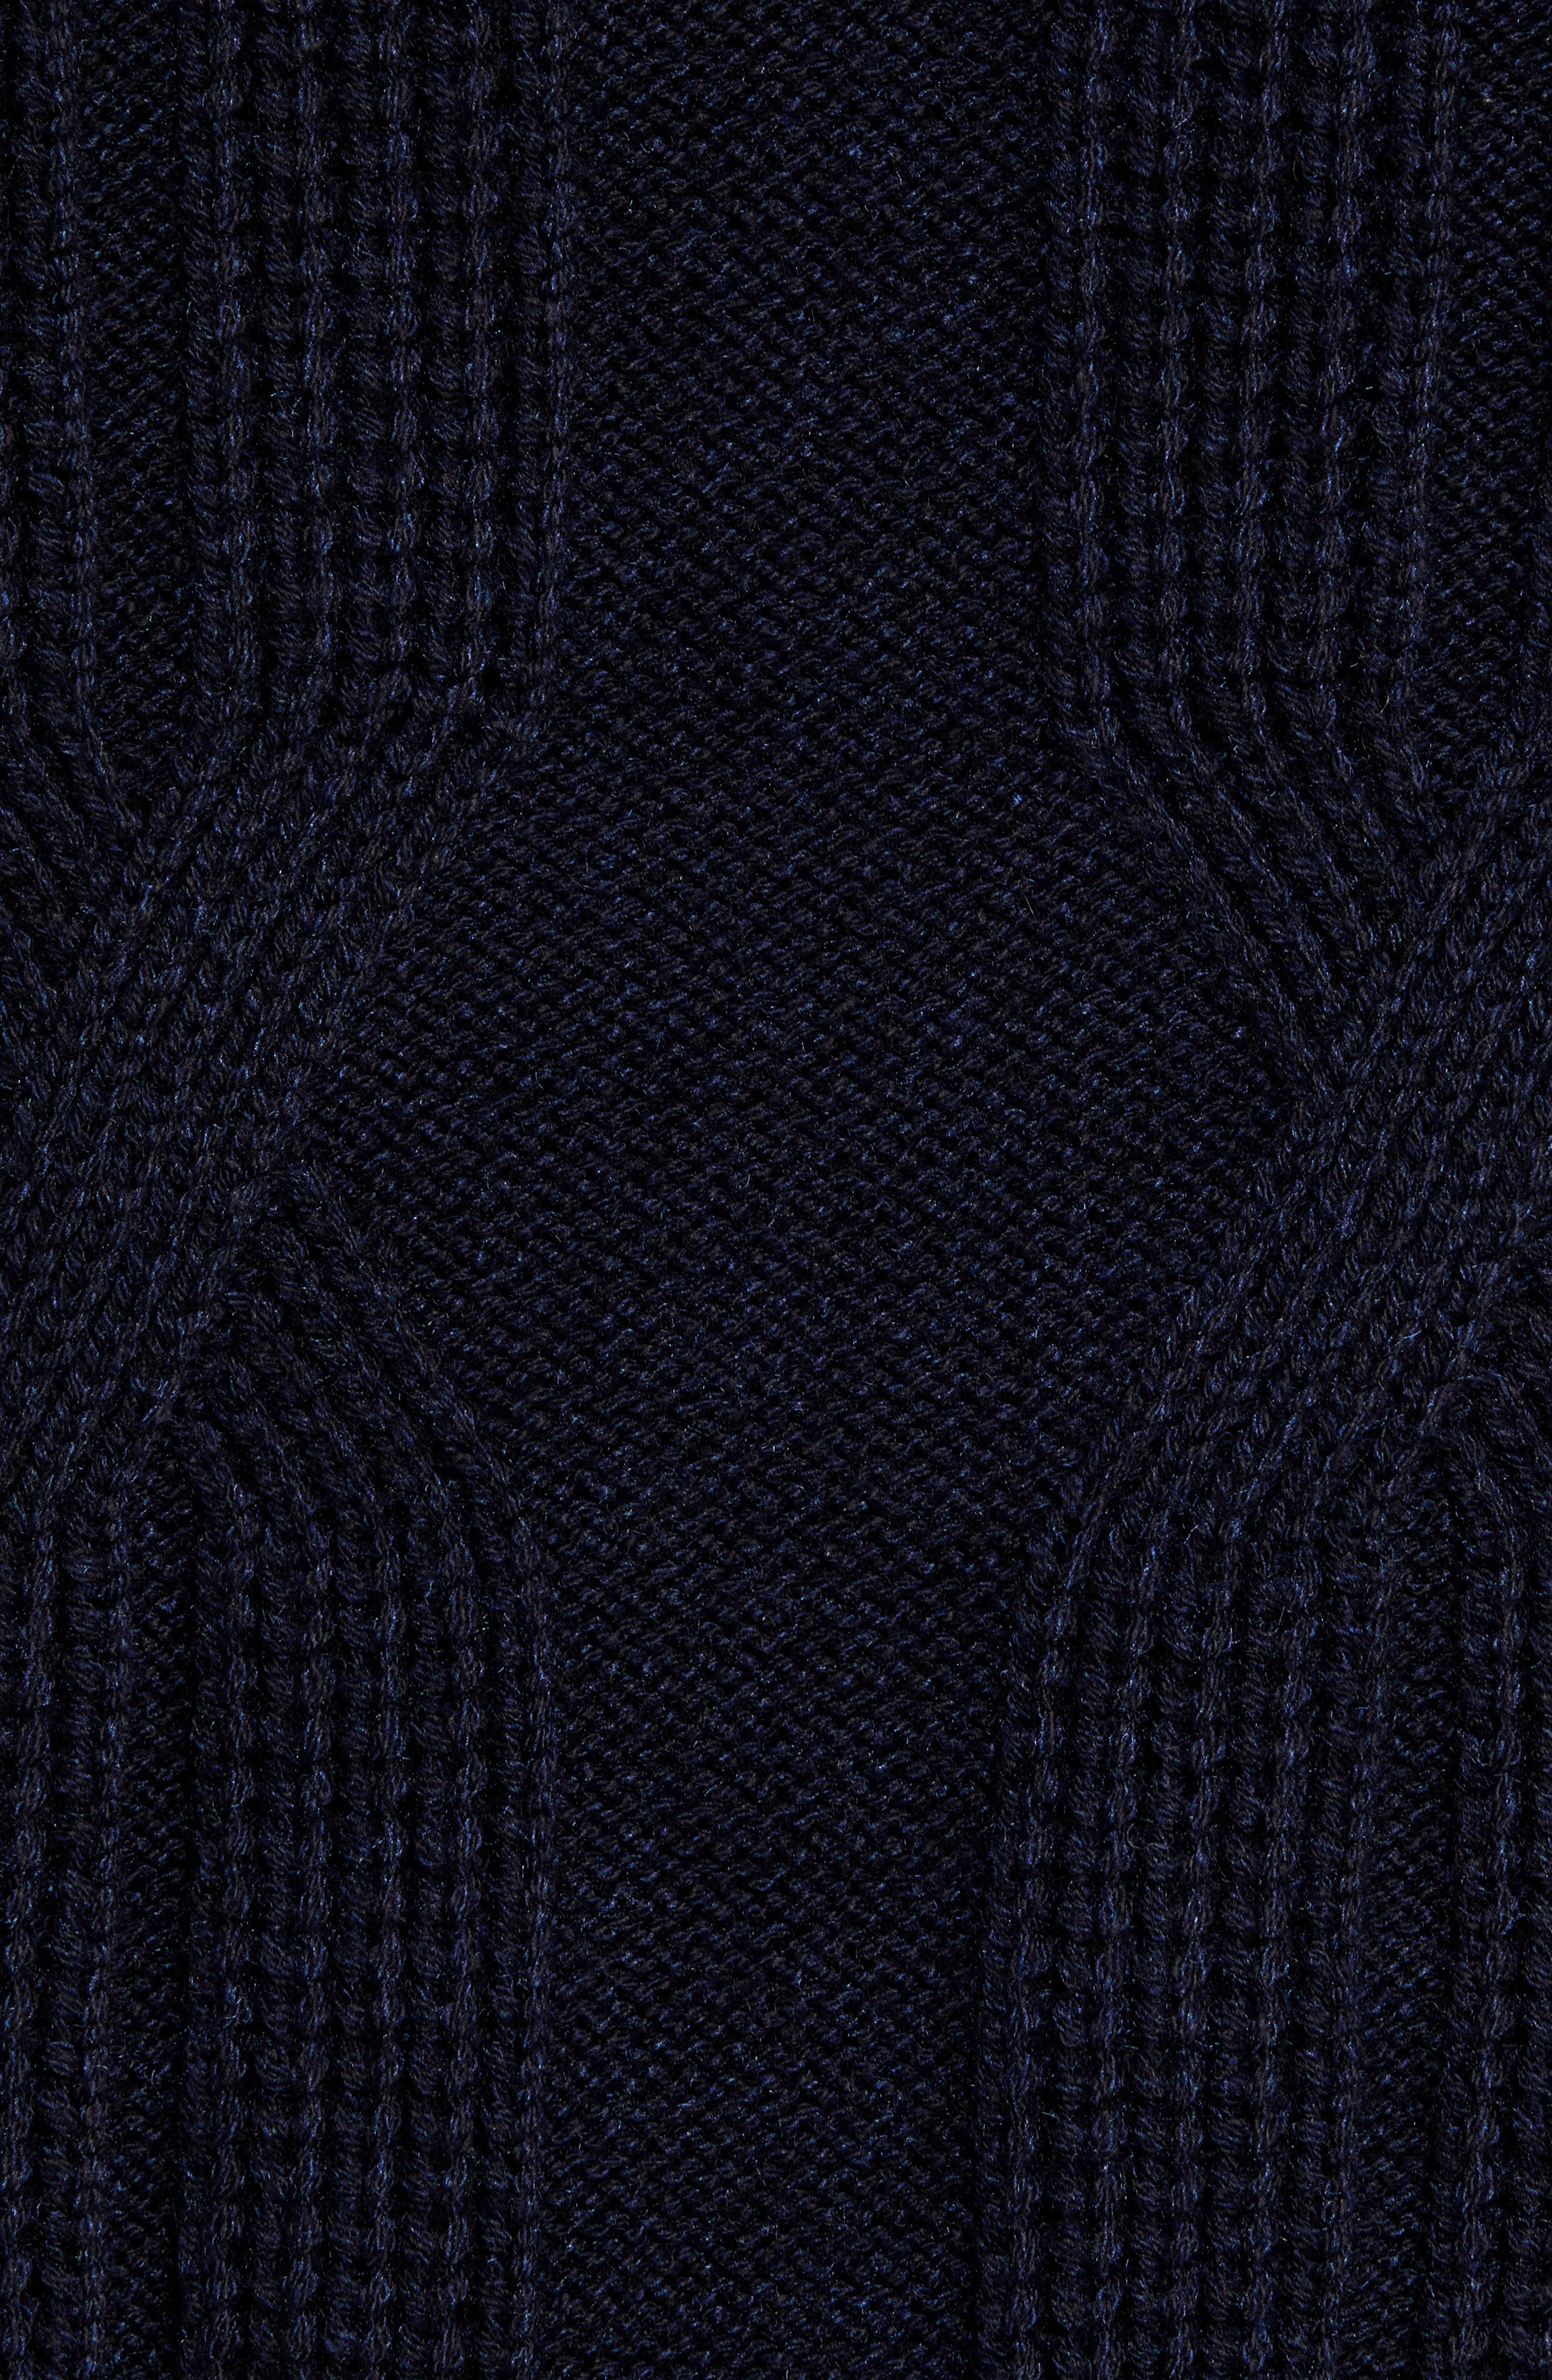 Laichi Trim Fit Cable Crewneck Sweater,                             Alternate thumbnail 5, color,                             NAVY